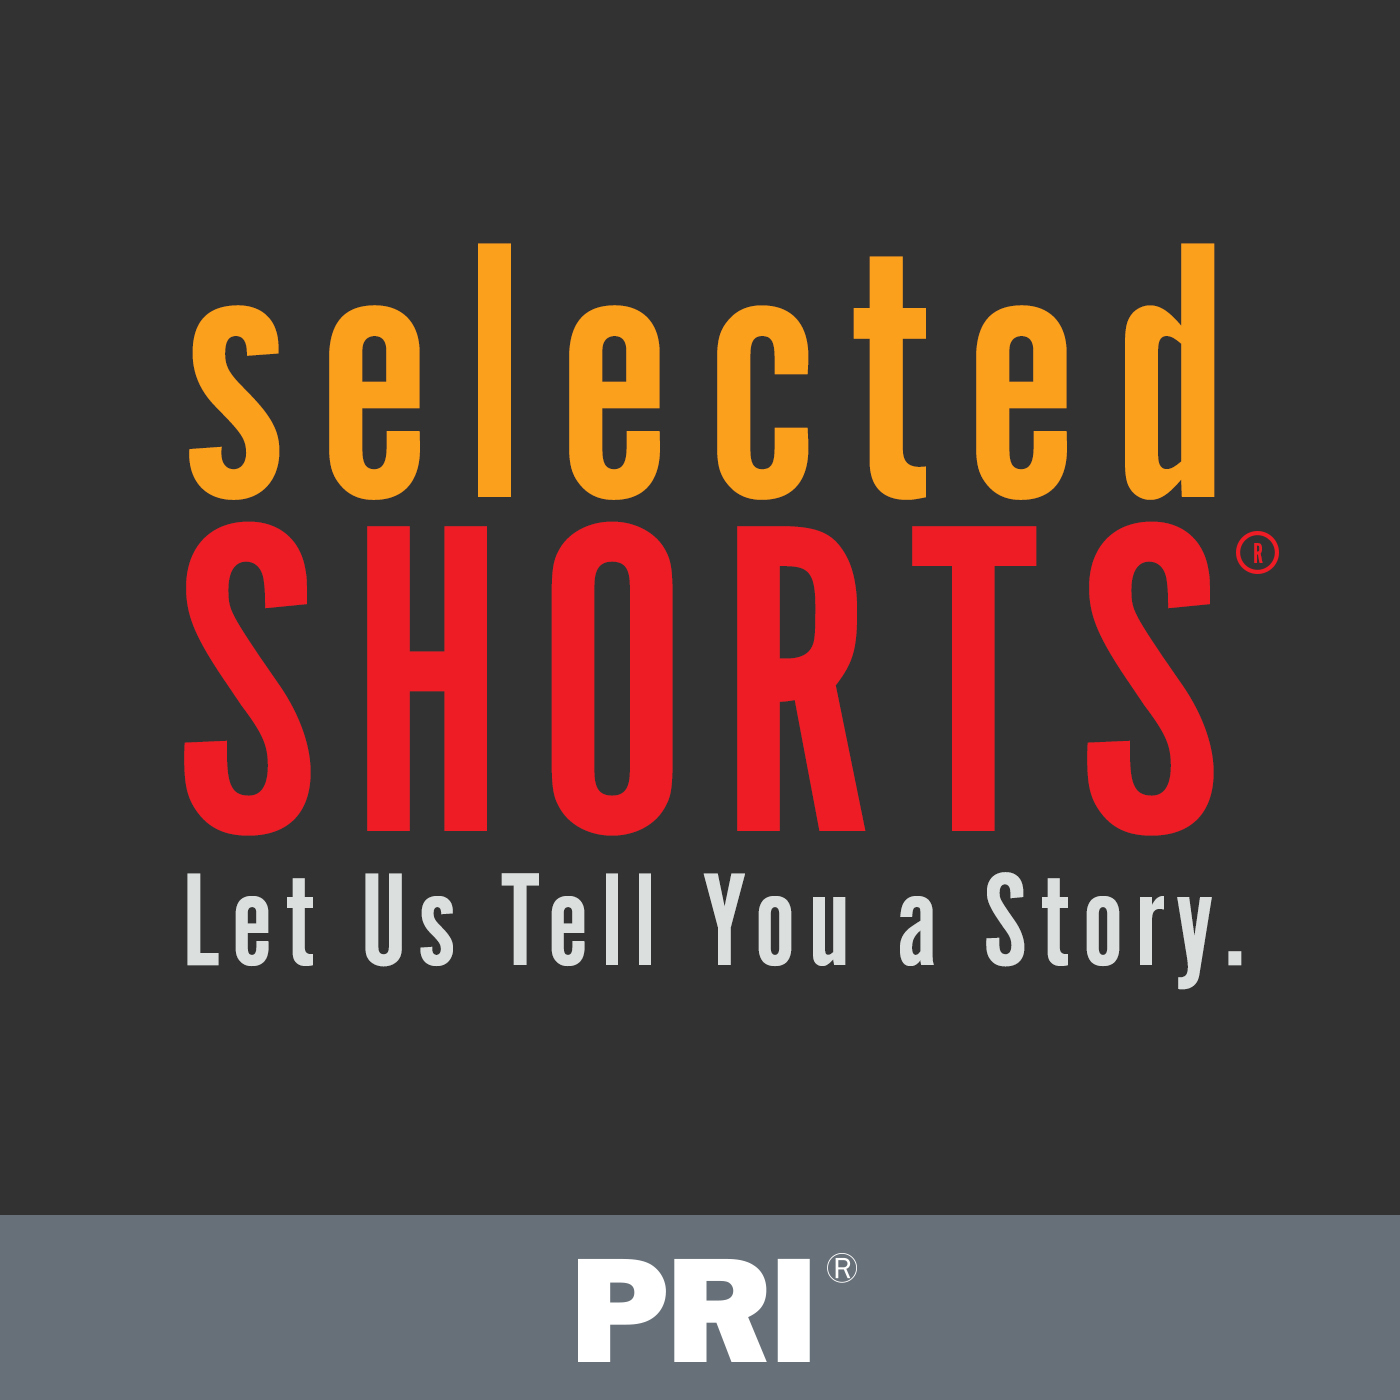 TSR & Selected Shorts present the launch of the Summer/Fall 2015 issue of The Southampton Review    July 18, 2015   Writers: Meg Wolitzer, Billy Collins, Roger Rosenblatt, and David Rakoff Readers: Jill Eikenberry, Michael Tucker, Harris Yulin, and Billy Collins